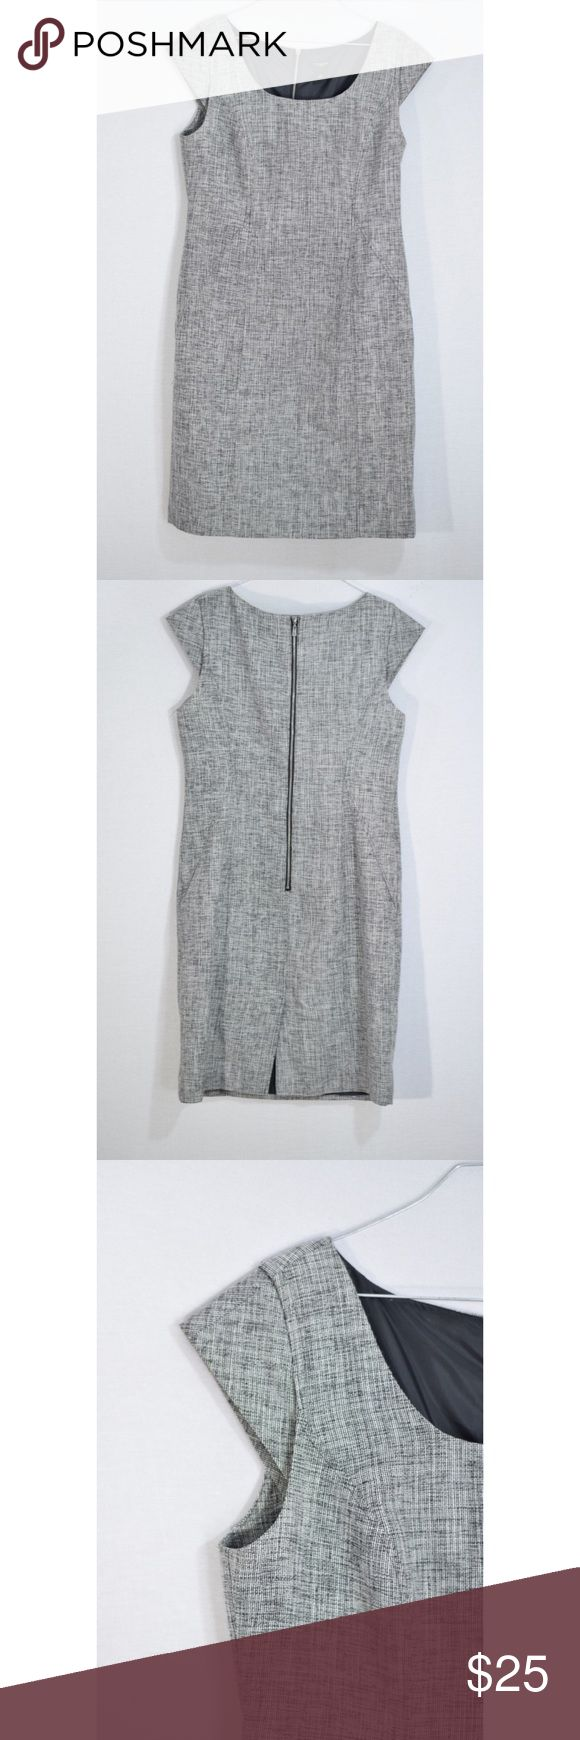 """Ann Taylor Black and White Cocktail Dress Great condition no flaws 38""""L 19"""" pit to pit fully lined Ann Taylor Dresses Midi"""